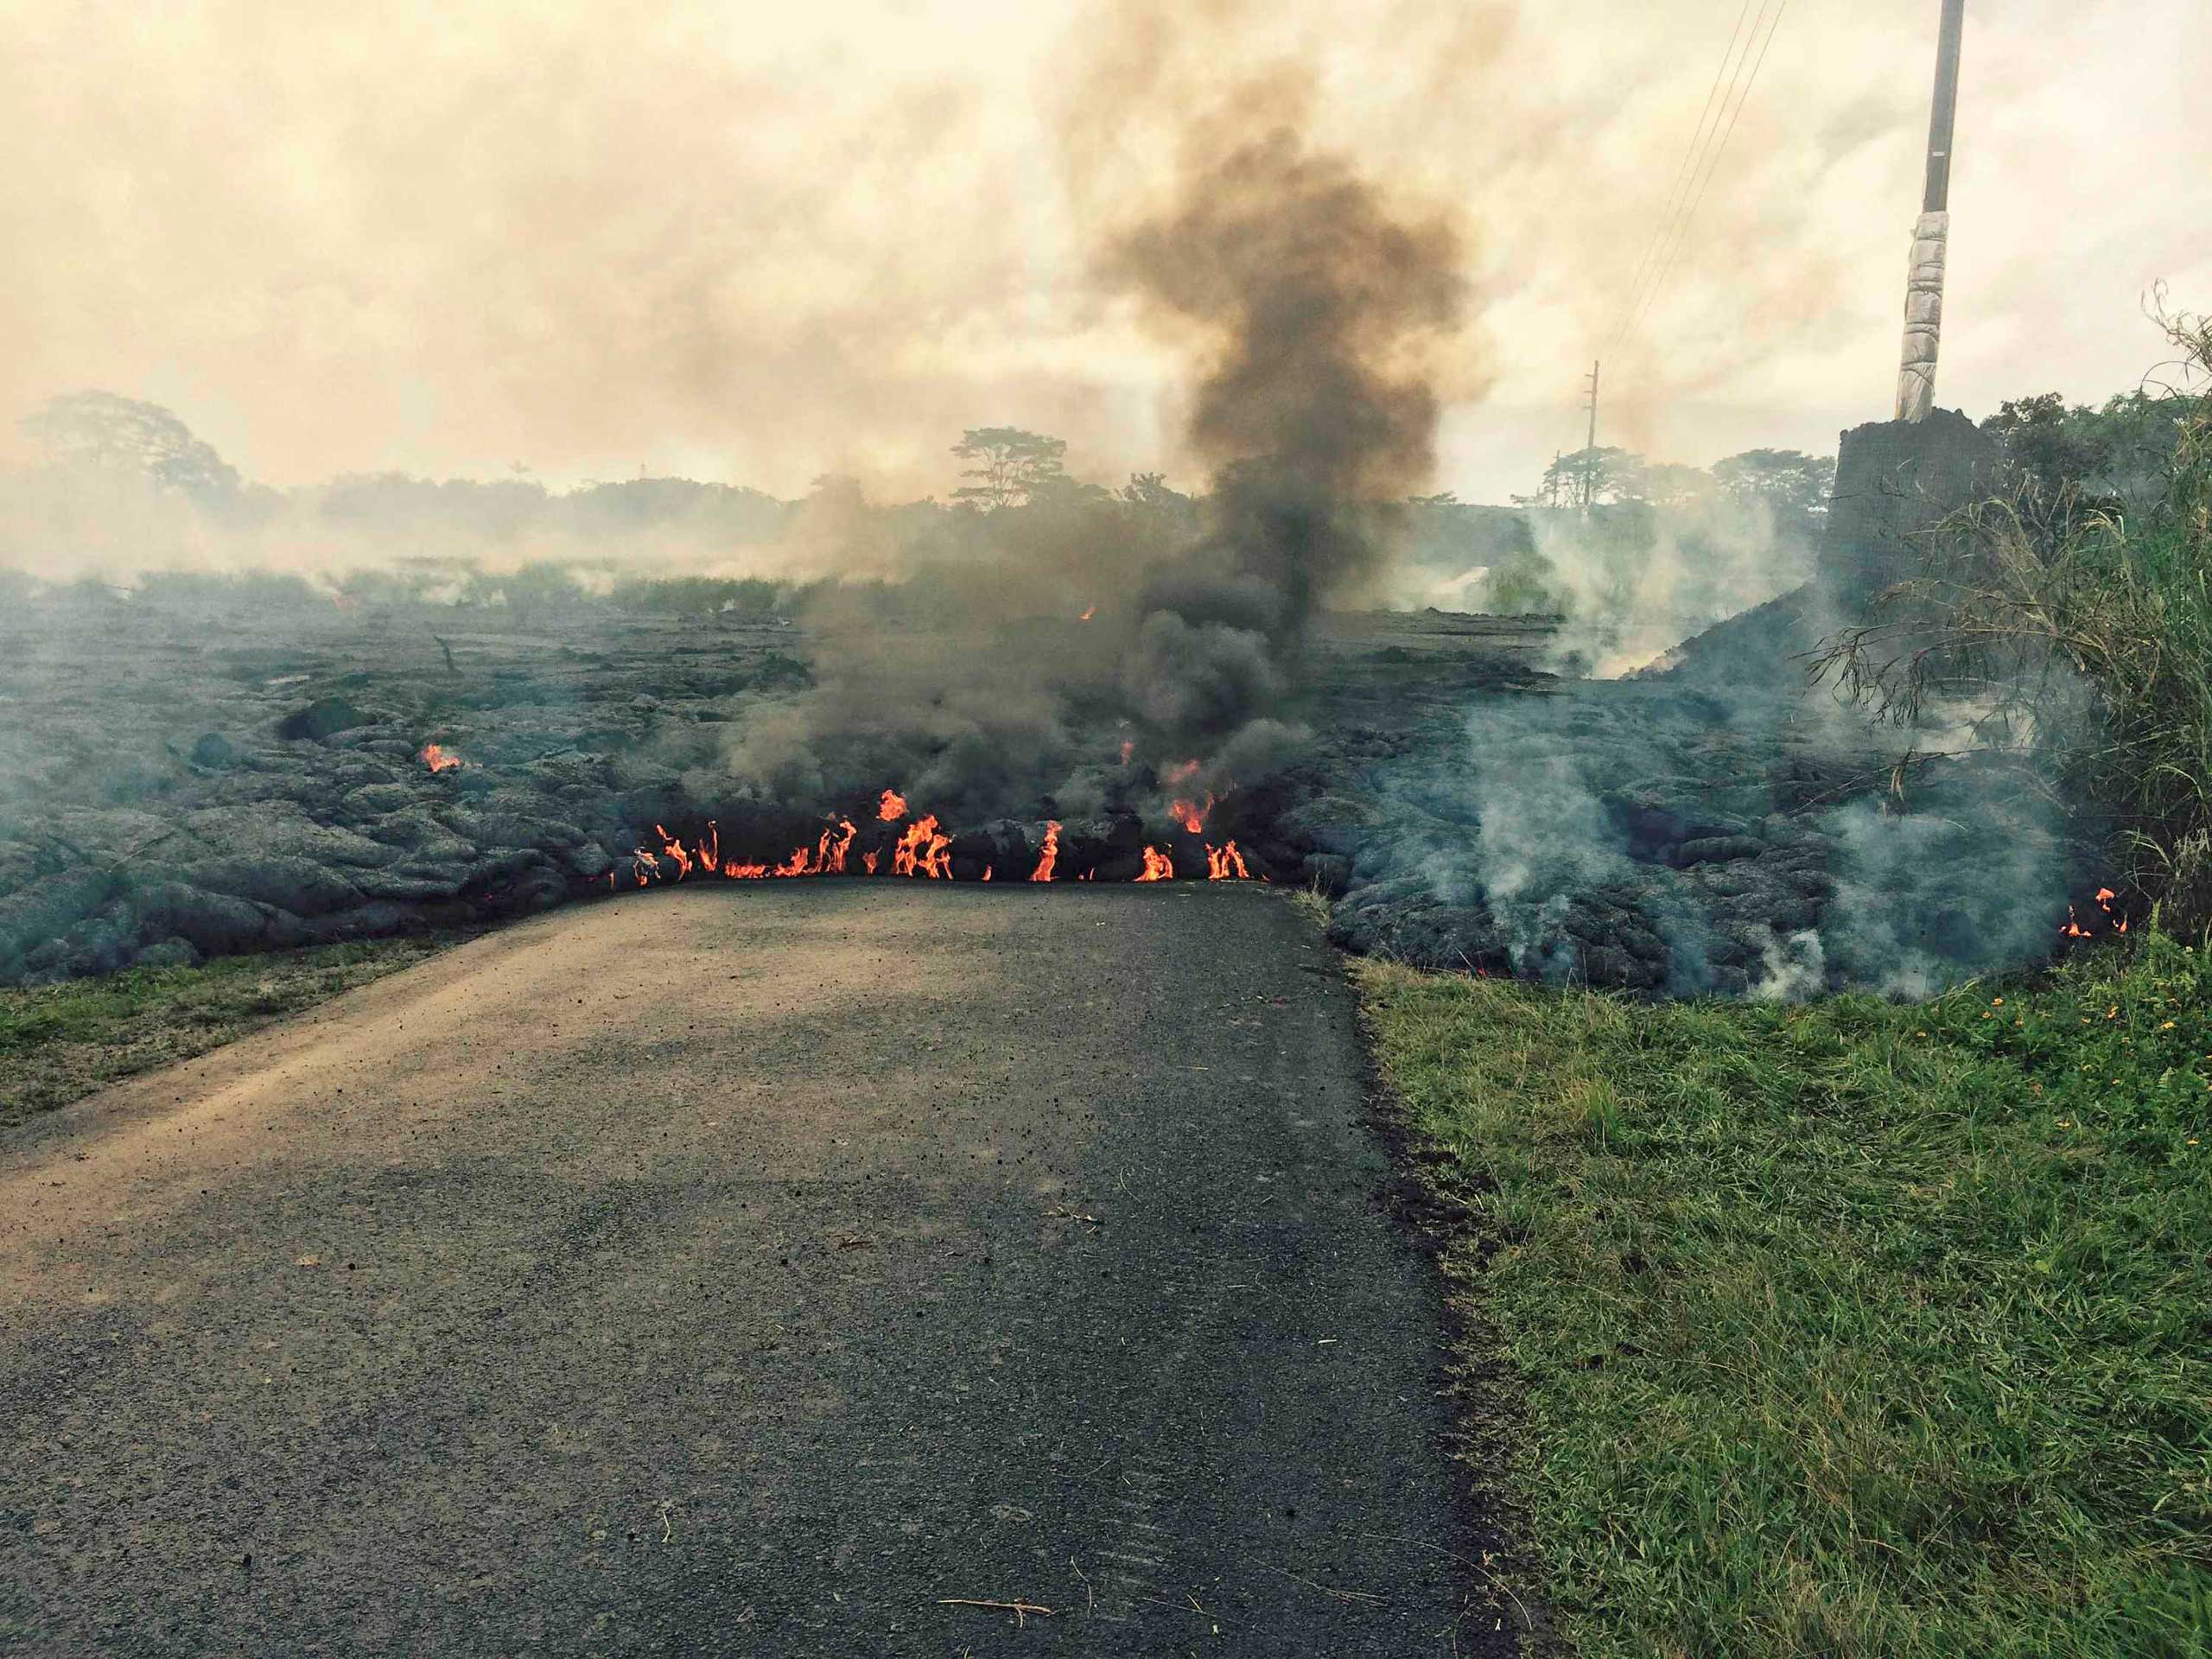 The lava flow from the Kilauea Volcano is seen crossing Apa'a Street/Cemetery Road near the village of Pahoa, Hawaii on Oct. 25, 2014.